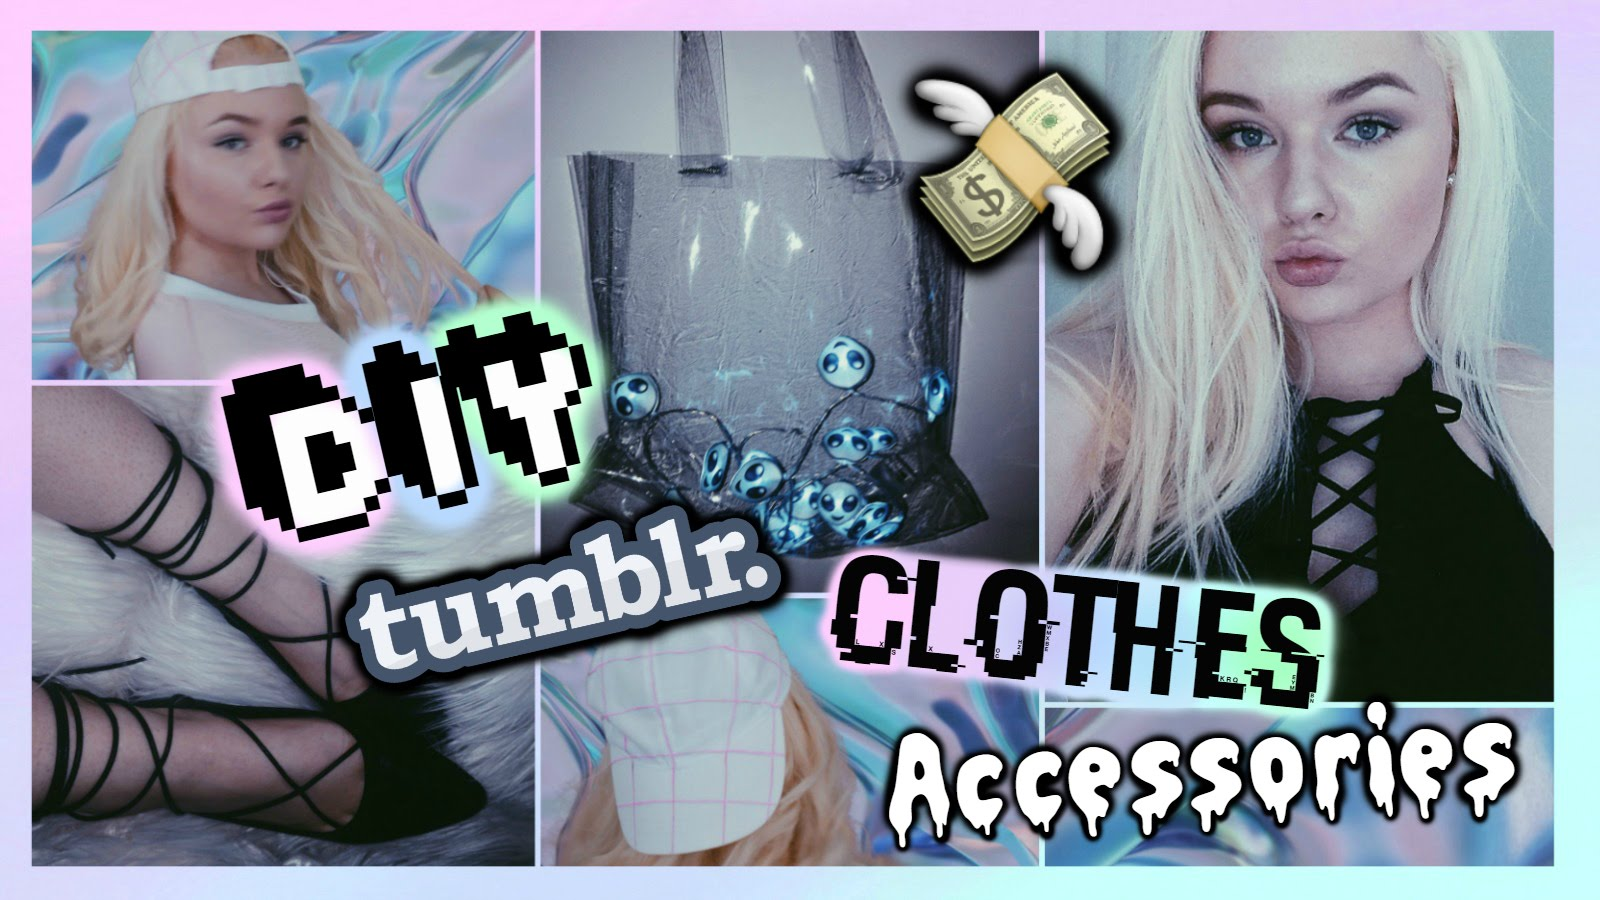 Diy Tumblr Clothes & Components! for Summer time :)